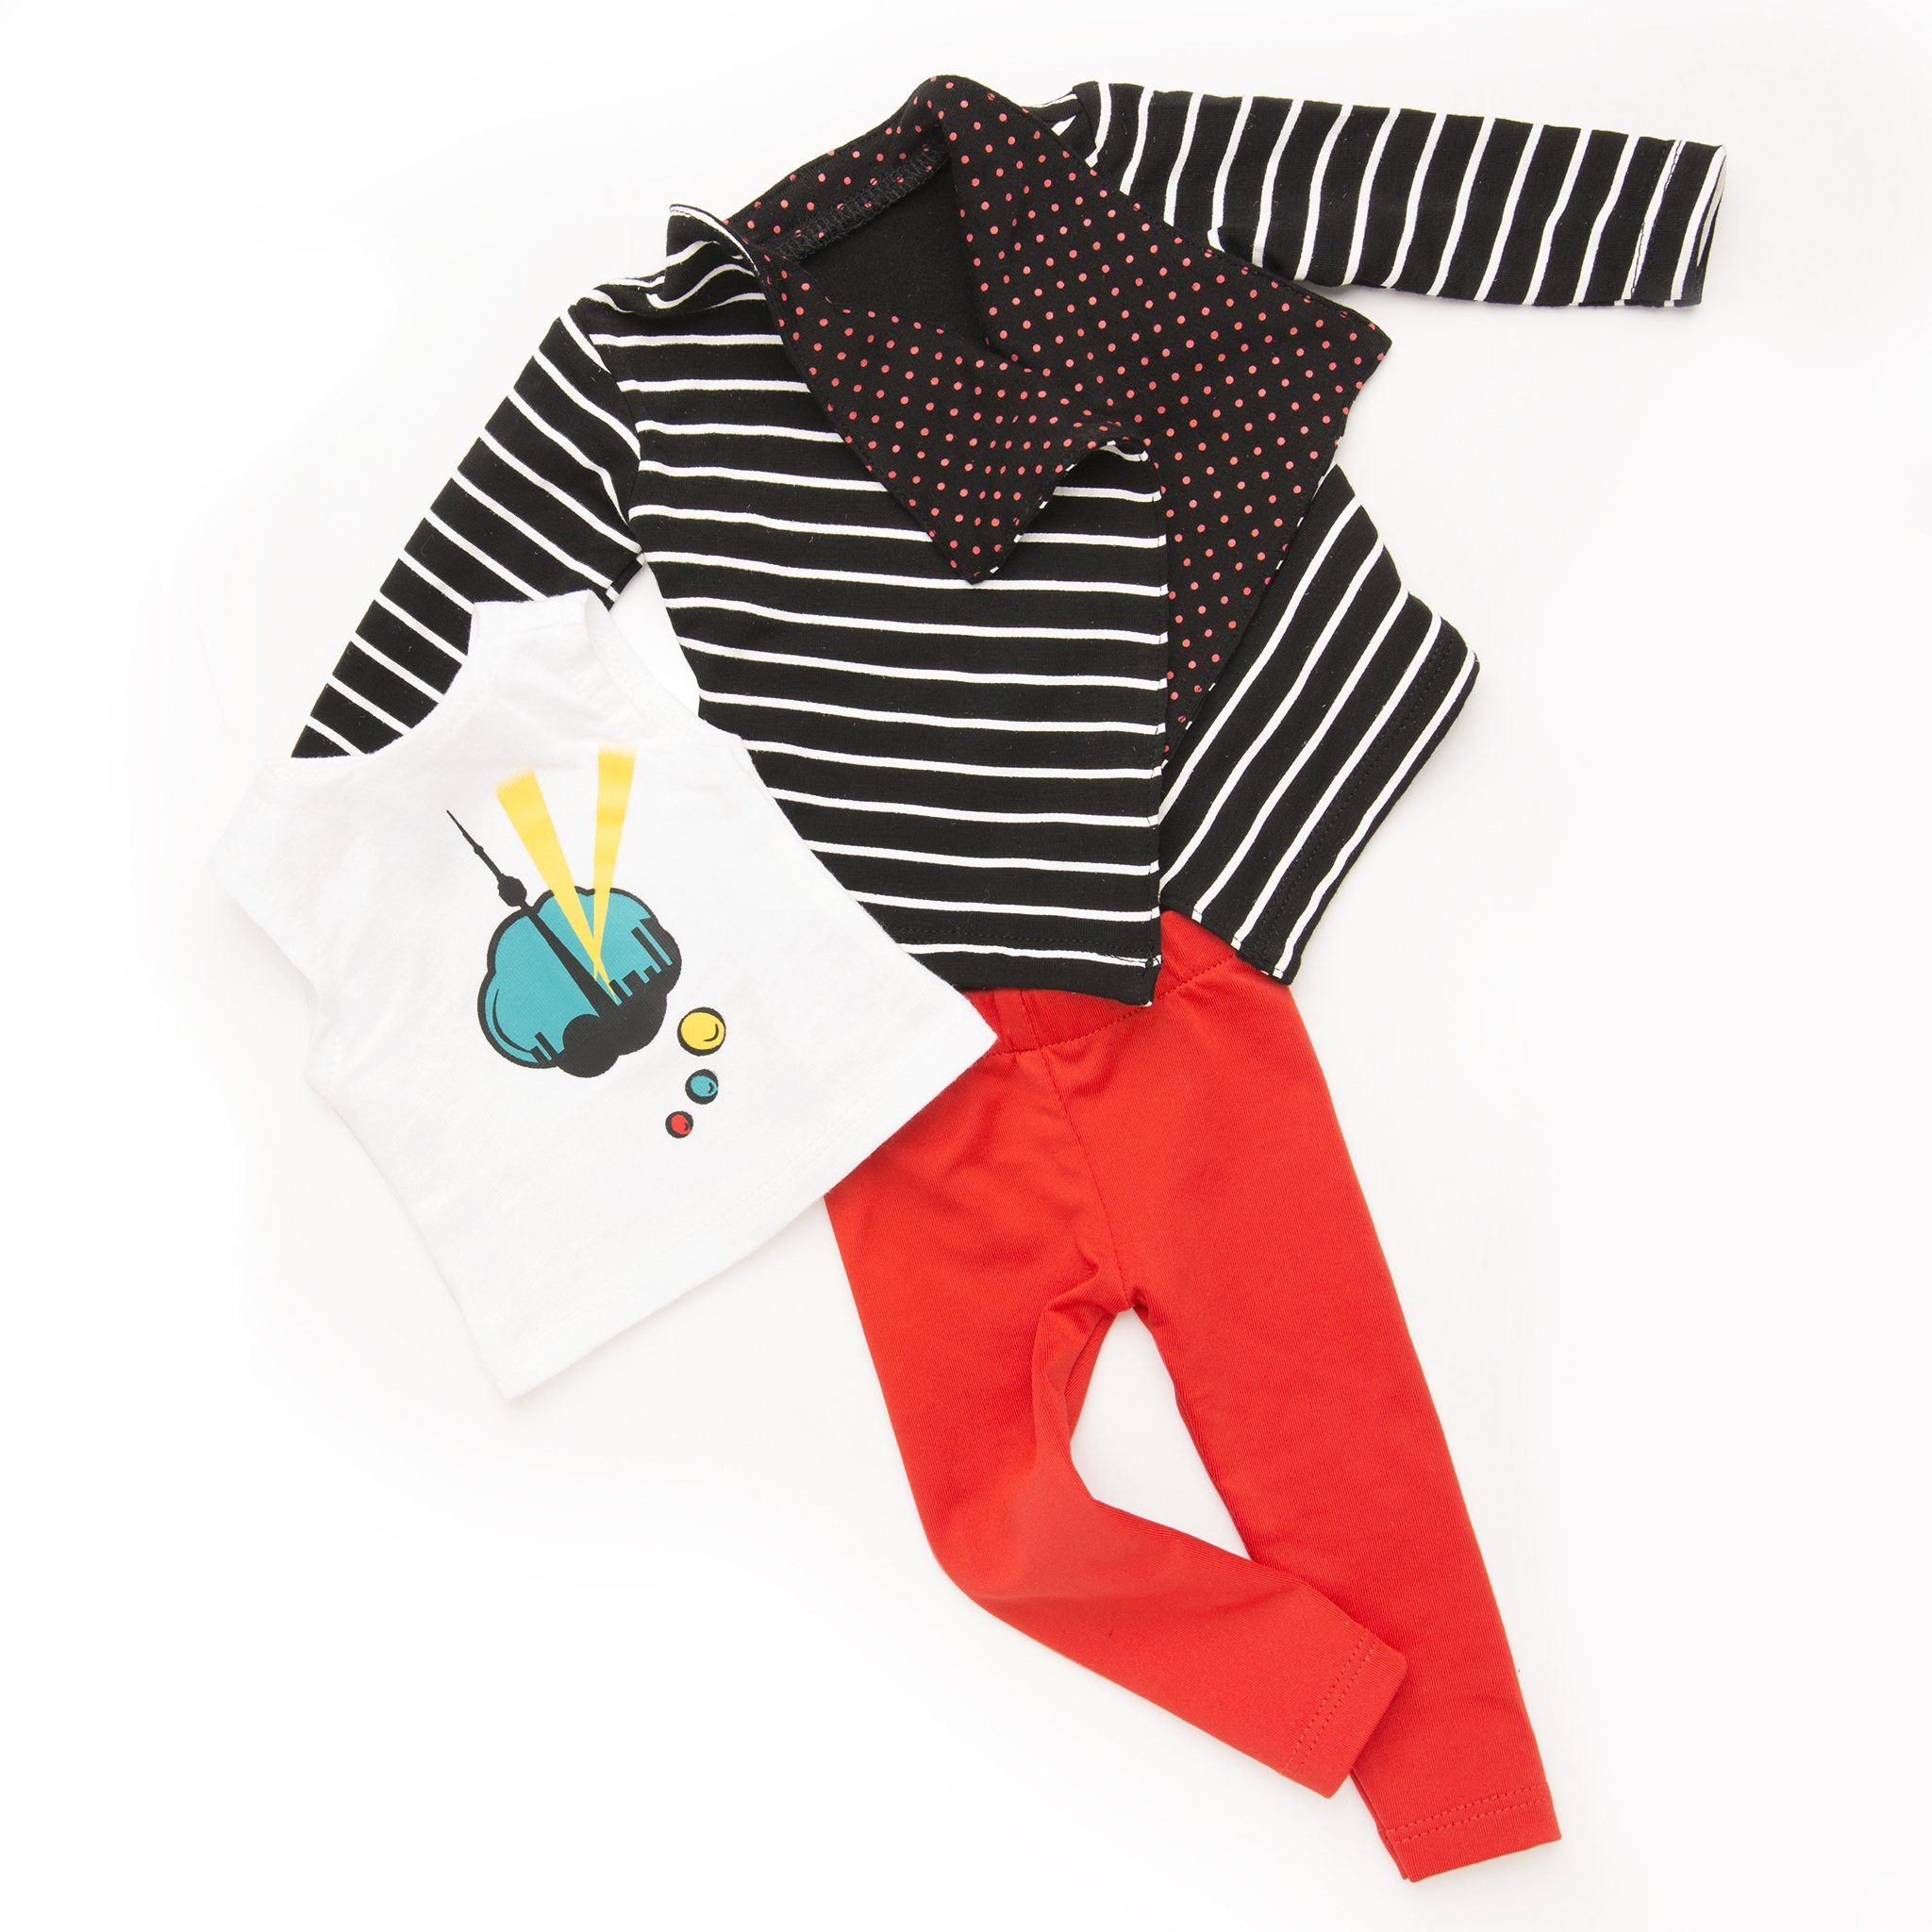 Art of the city black and white striped sweater, white shirt with comic-inspired Toronto skyline graphic, red tights fits all 18 inch dolls